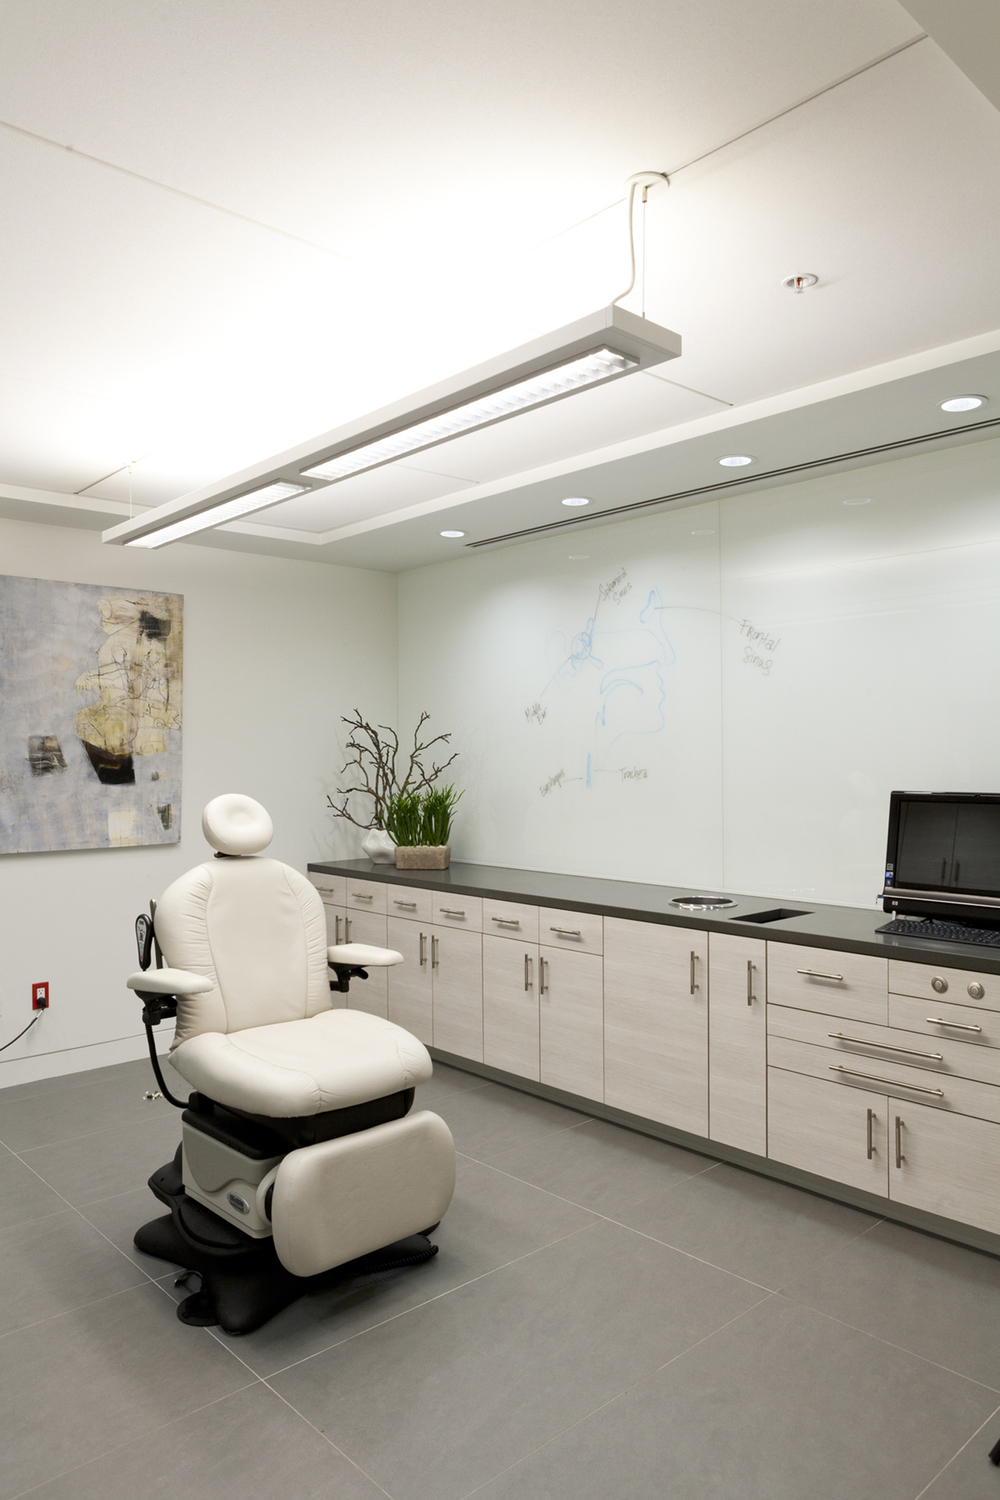 Design-Helm_CENTER_Interiors_Procedure-Room.jpg